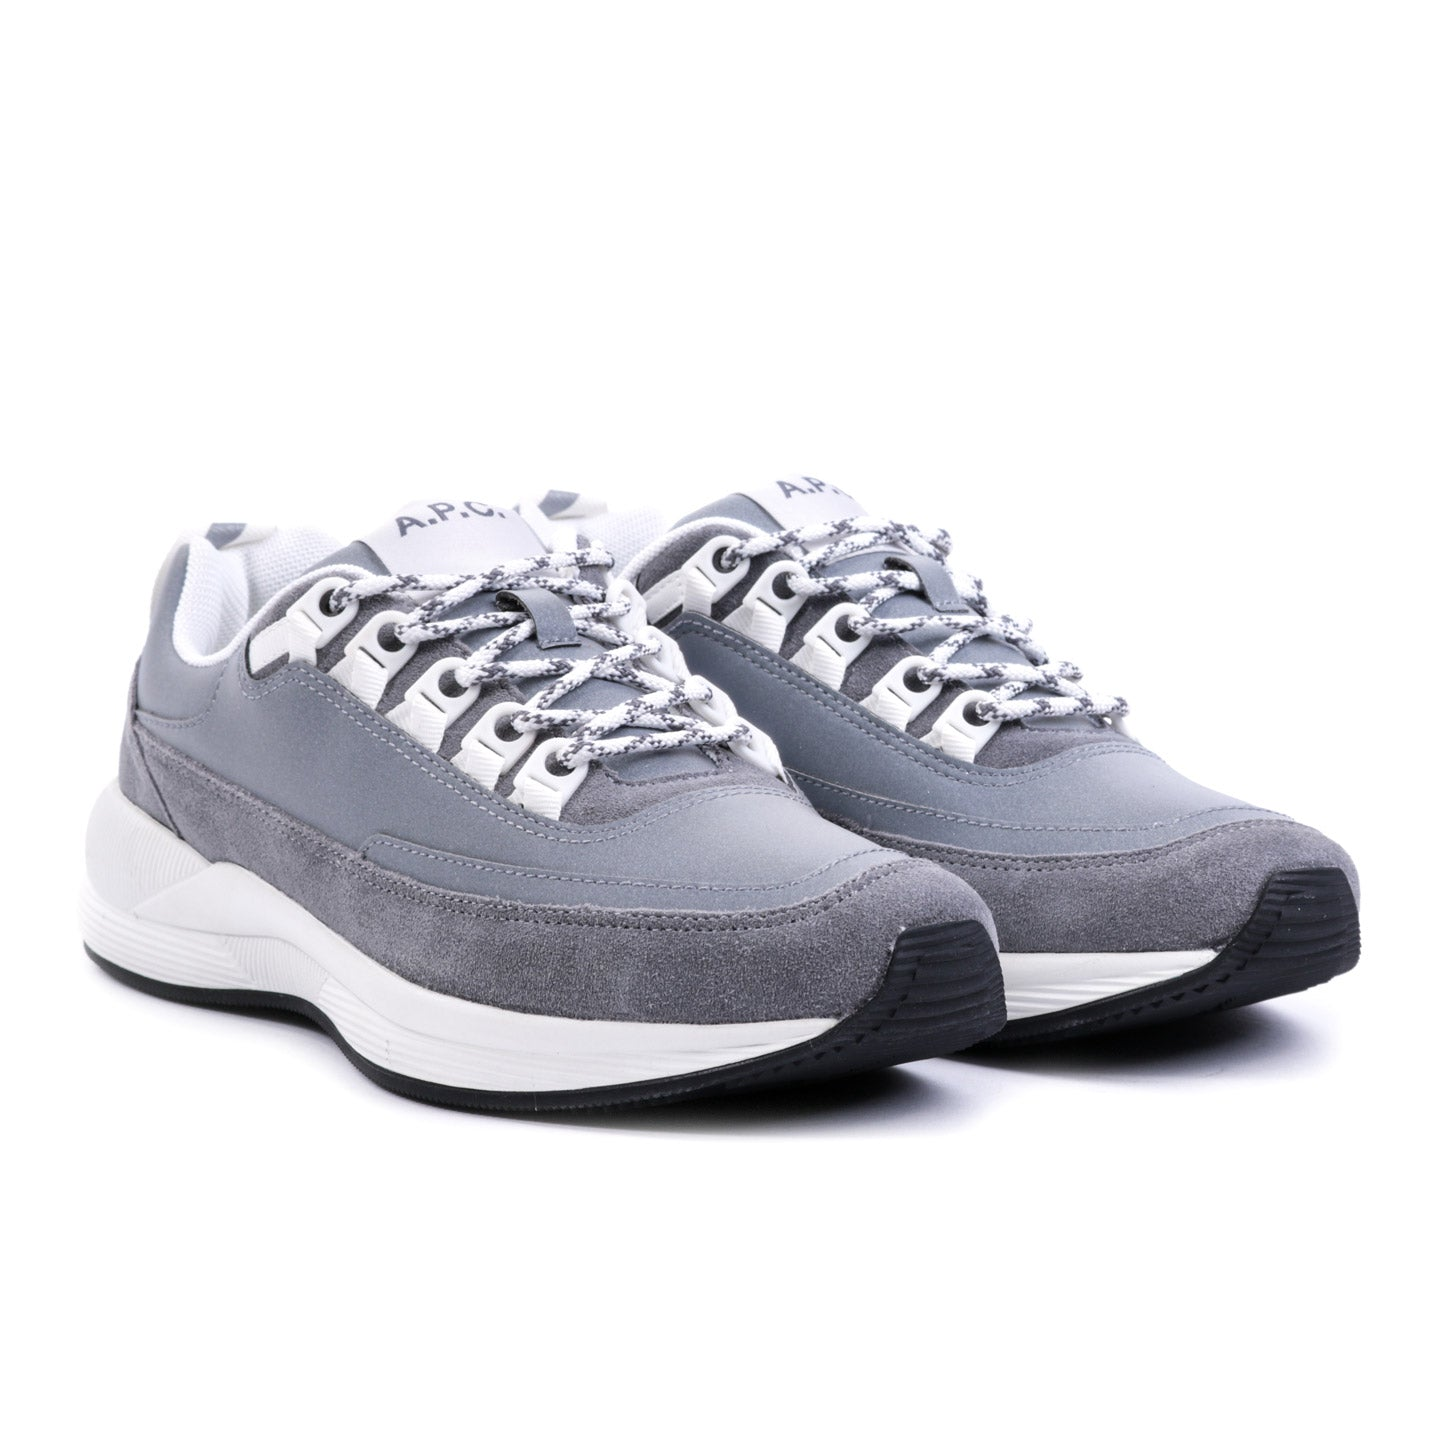 A.P.C. TECHNO SHOES SILVER